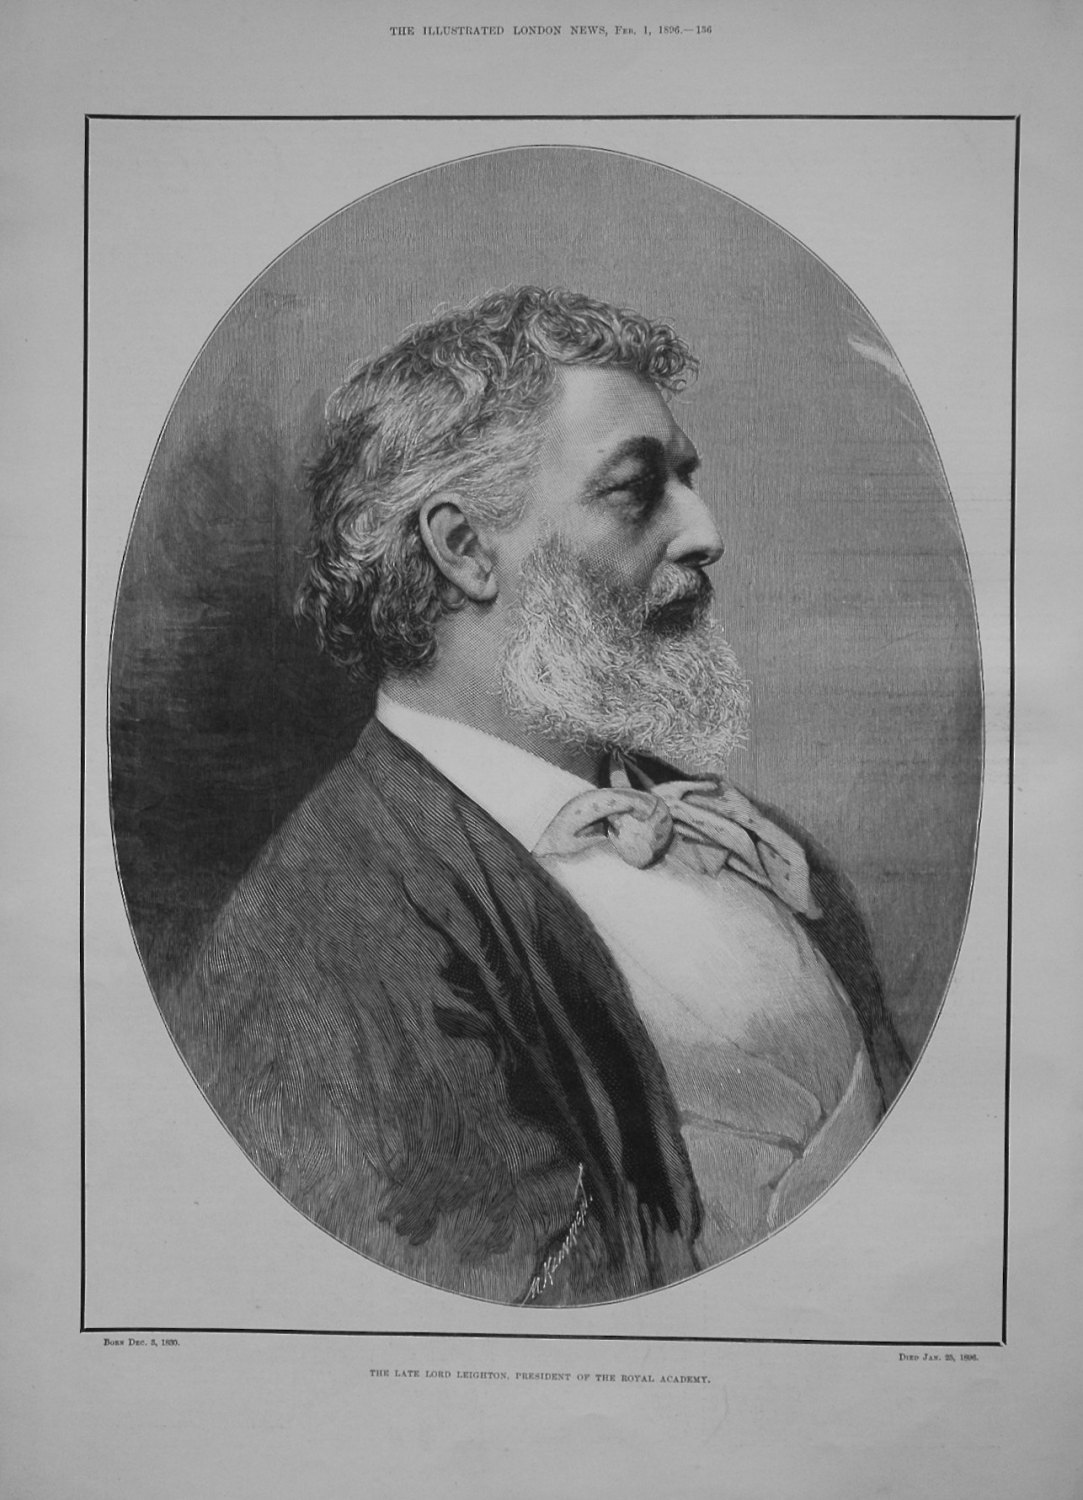 The Late Lord Leighton, President of the Royal Academy.